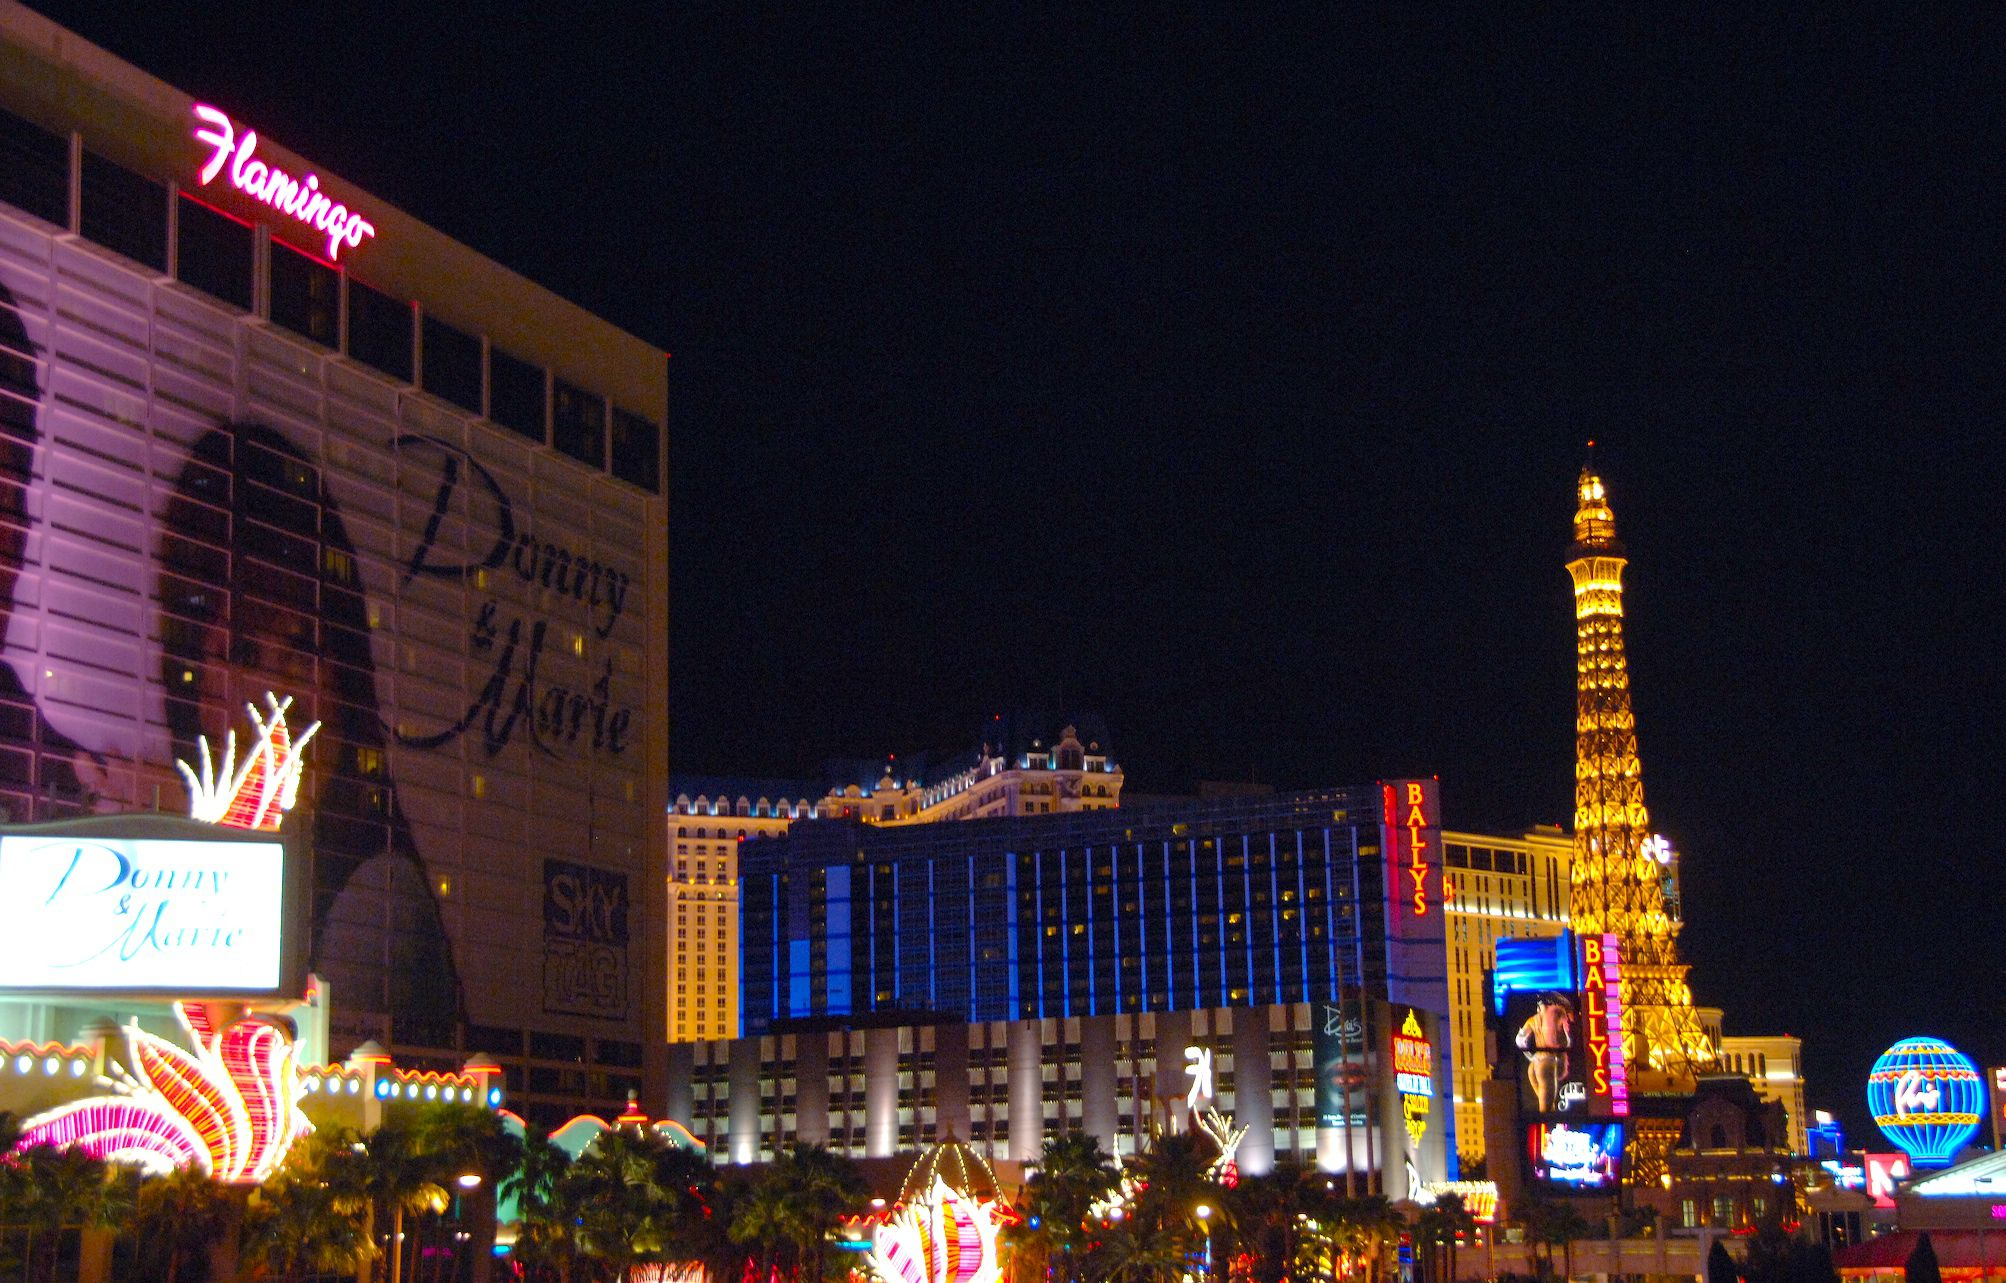 Right Choice Auto >> Flamingo Las Vegas Hotel and Casino Right on the Strip